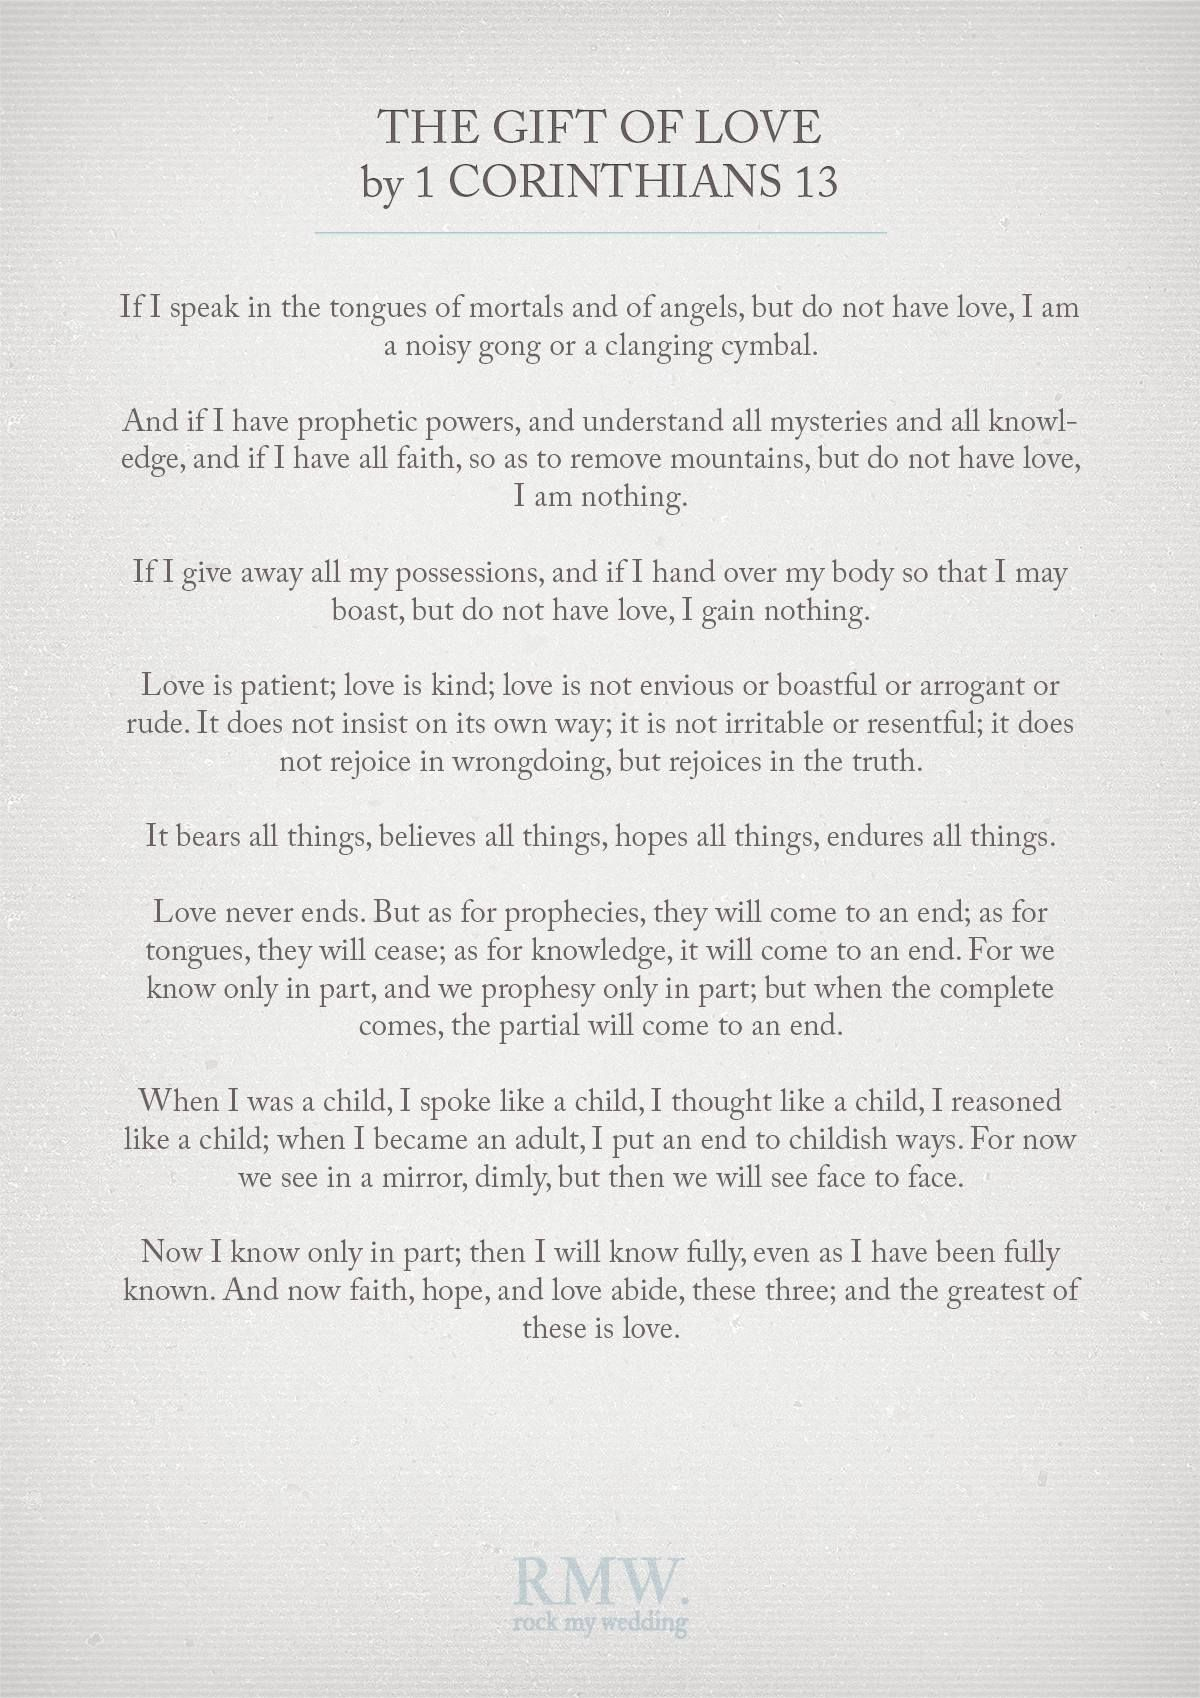 The Gift of Love by 1 Corinthians 13 Wedding Readings